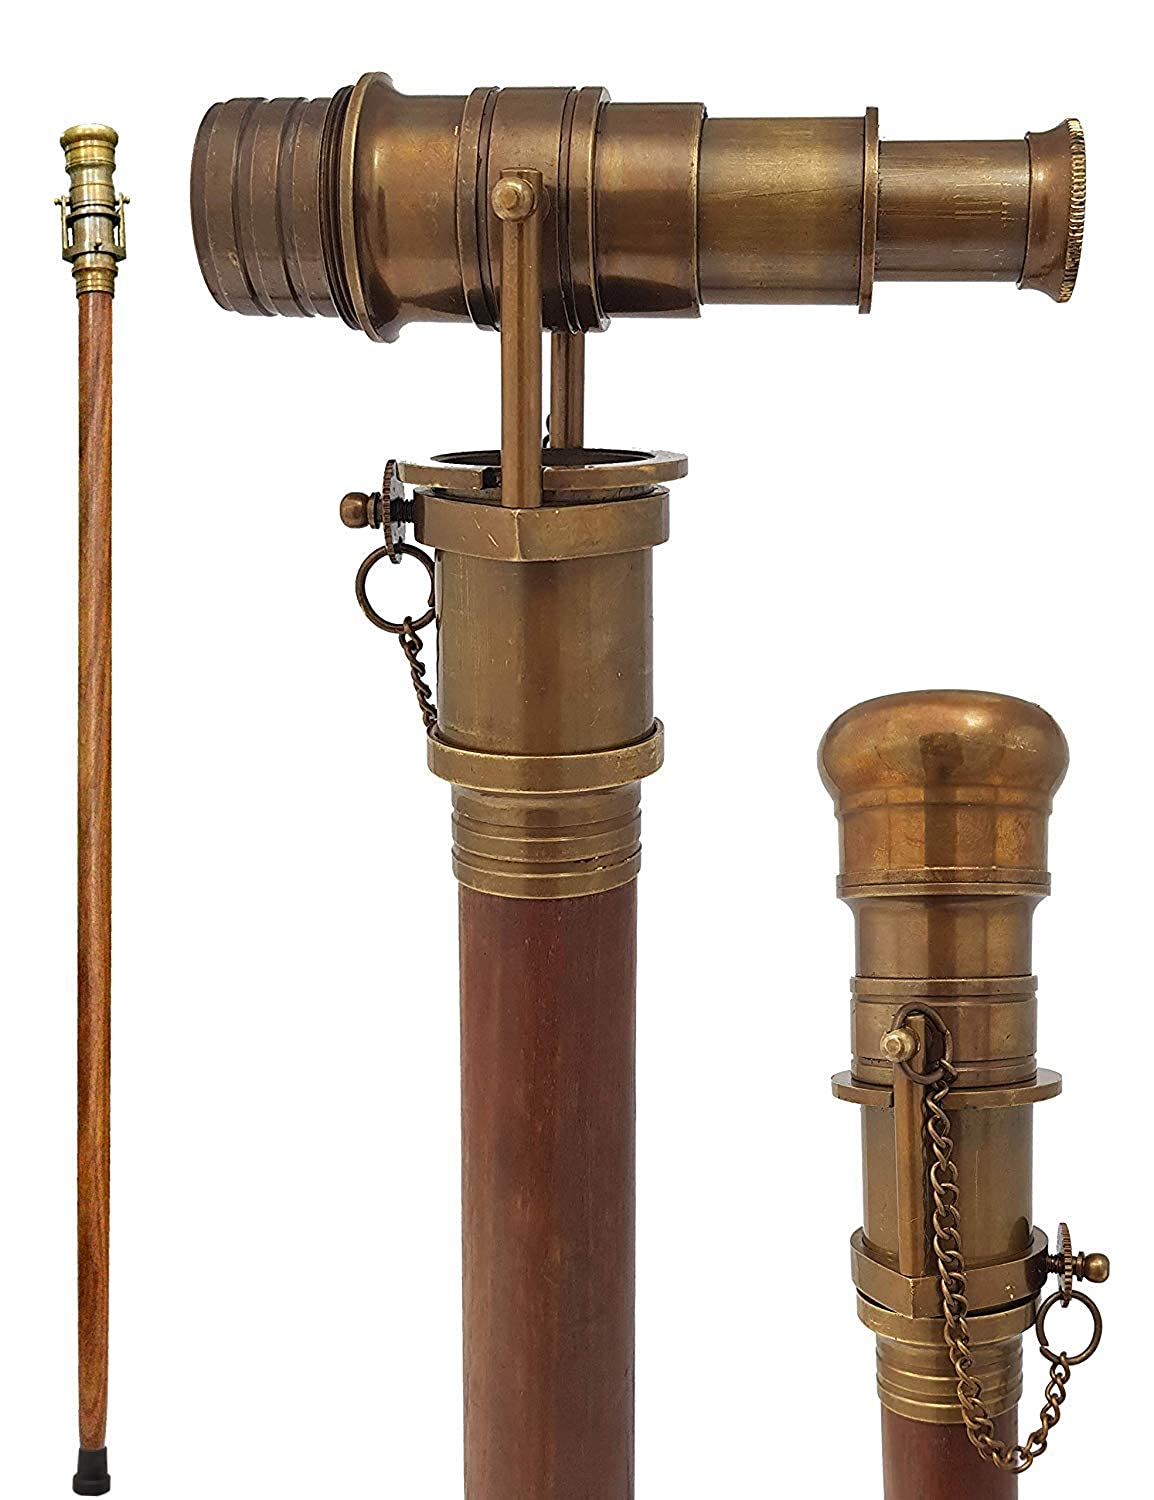 Men's Steampunk Goggles, Guns, Gadgets & Watches Brass Nautical Telescope Walking Stick Antique Finish Costume Wooden Cane Foldable Rosewood Stick Steampunk Style $49.99 AT vintagedancer.com